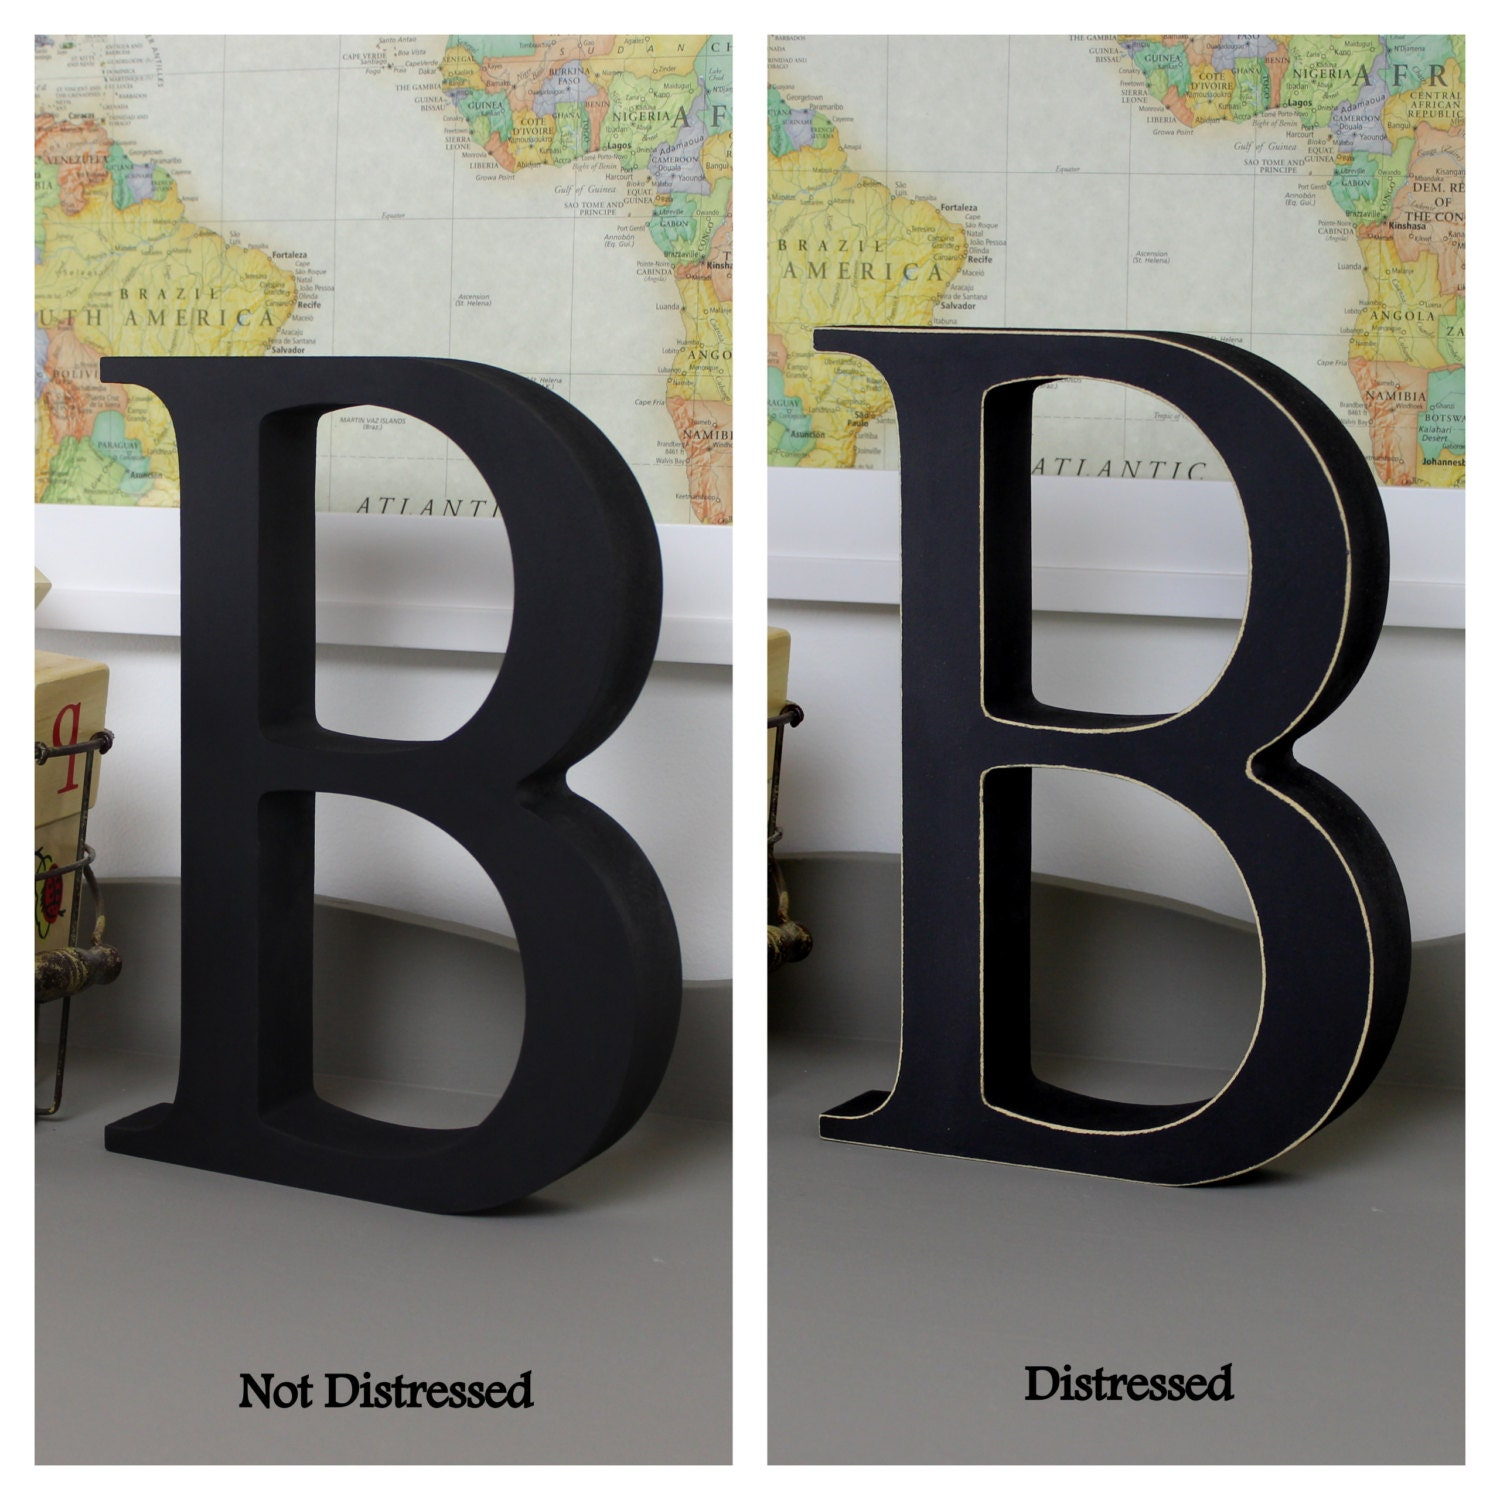 standing letter decor alphabet letters free standing alphabet decor by lightfilled 24968 | il fullxfull.561693708 f0no